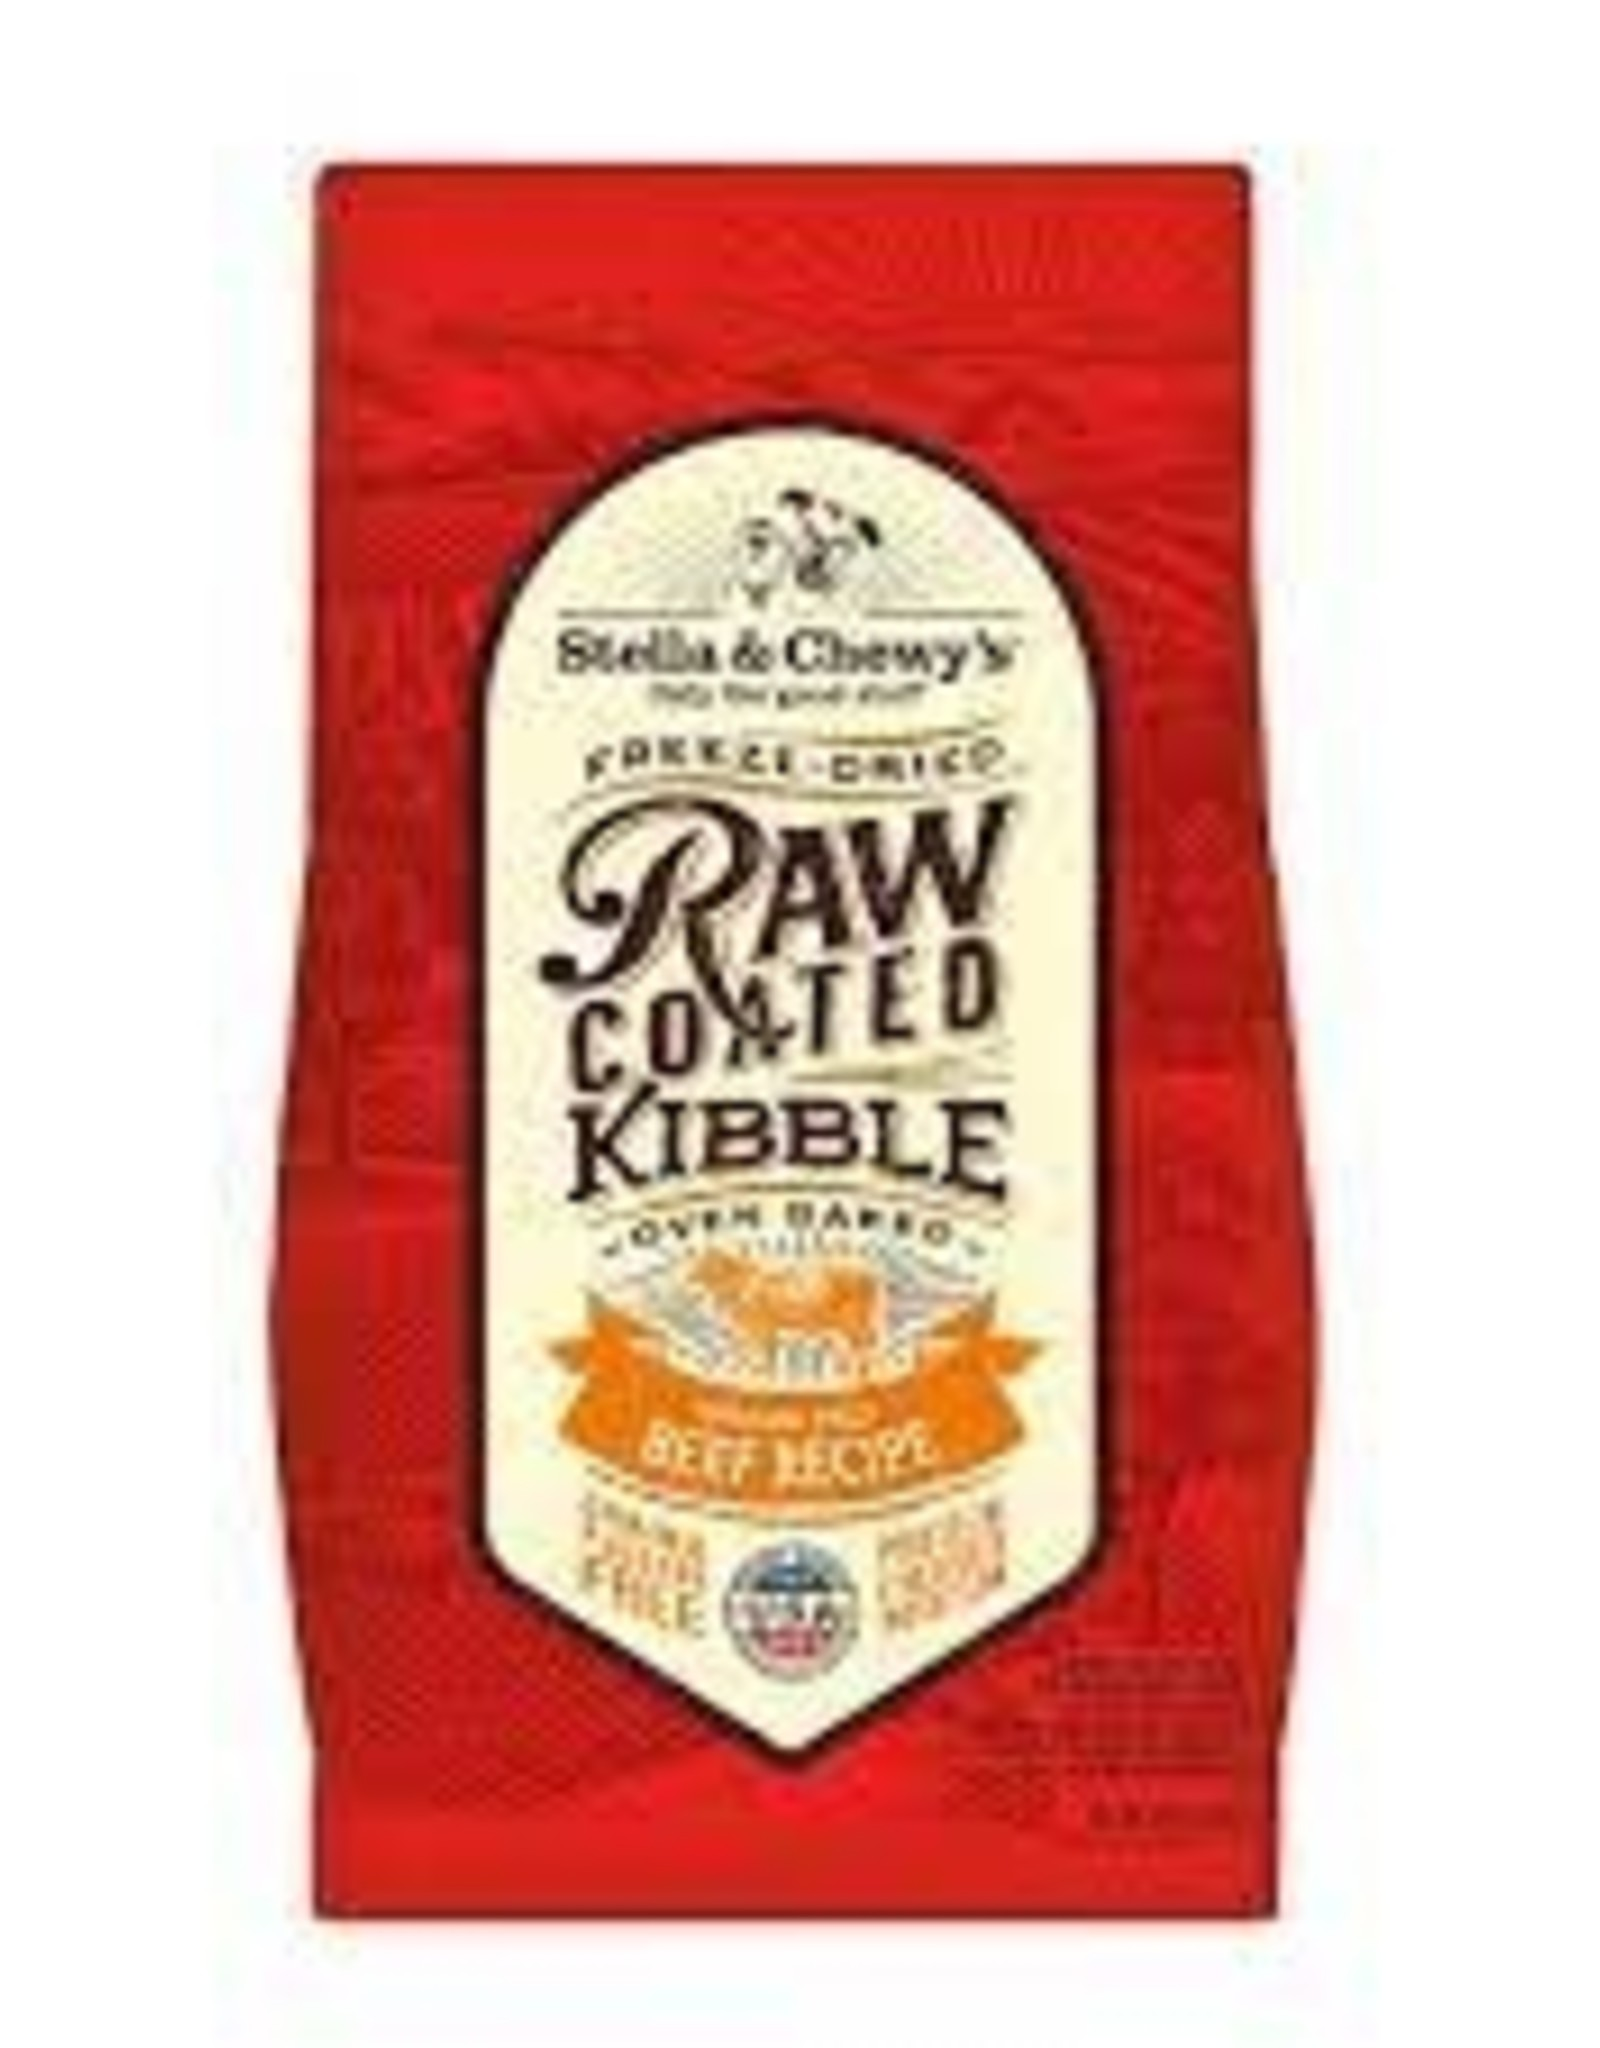 Stella and Chewy Stella & Chewy's Raw Coated Kibble Beef Recipe 3.5 LB